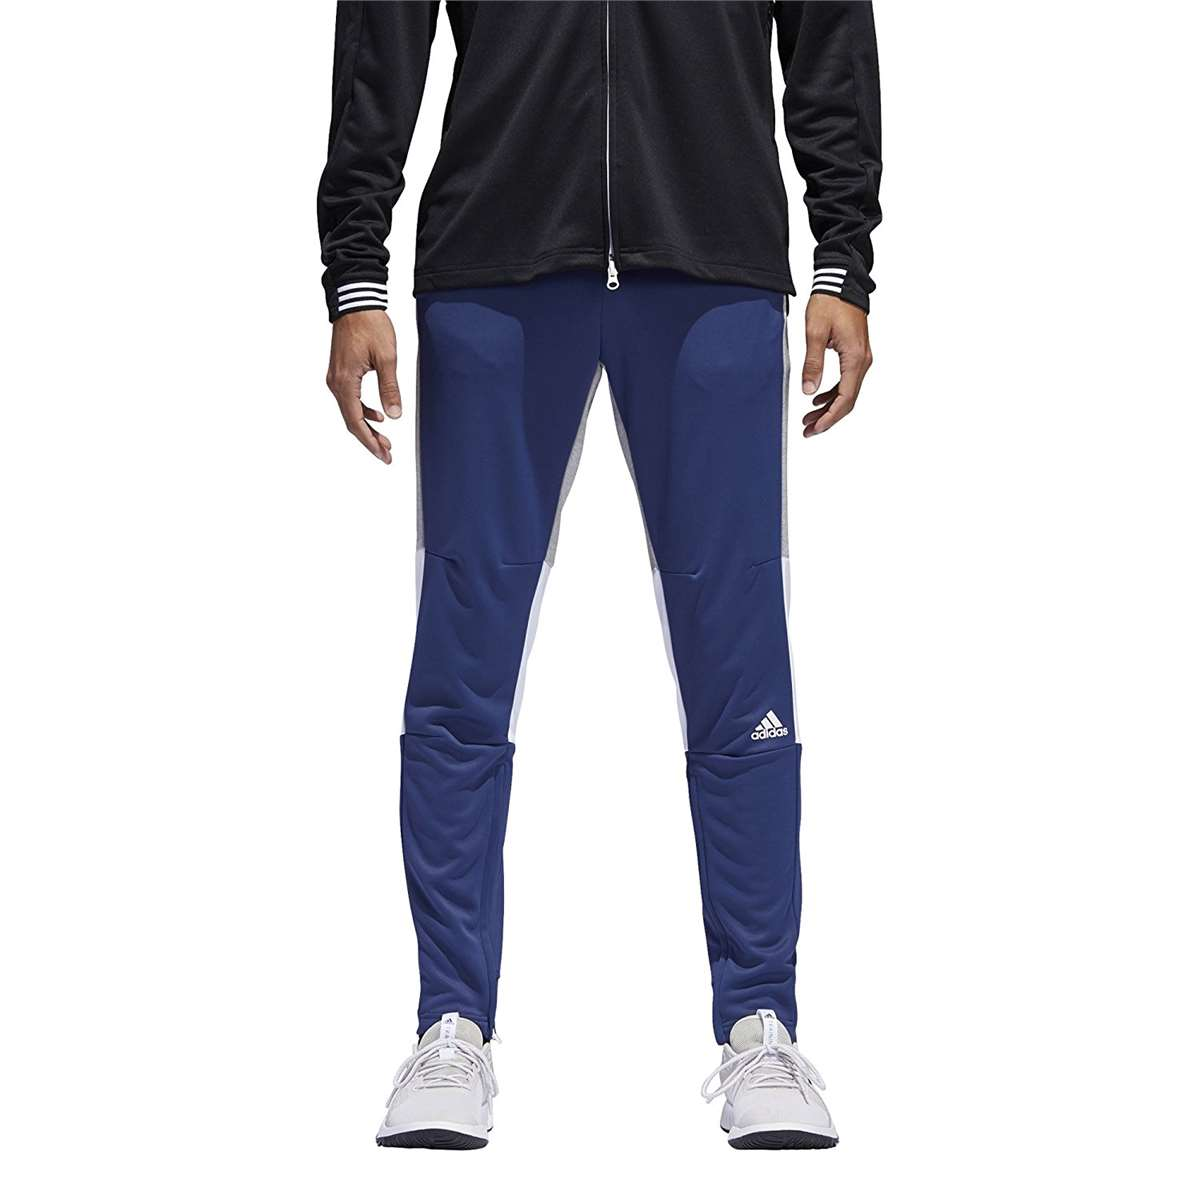 adidas Warm Top Youngster Boys Drill Full Length Sleeve Ventilated Slim Fit